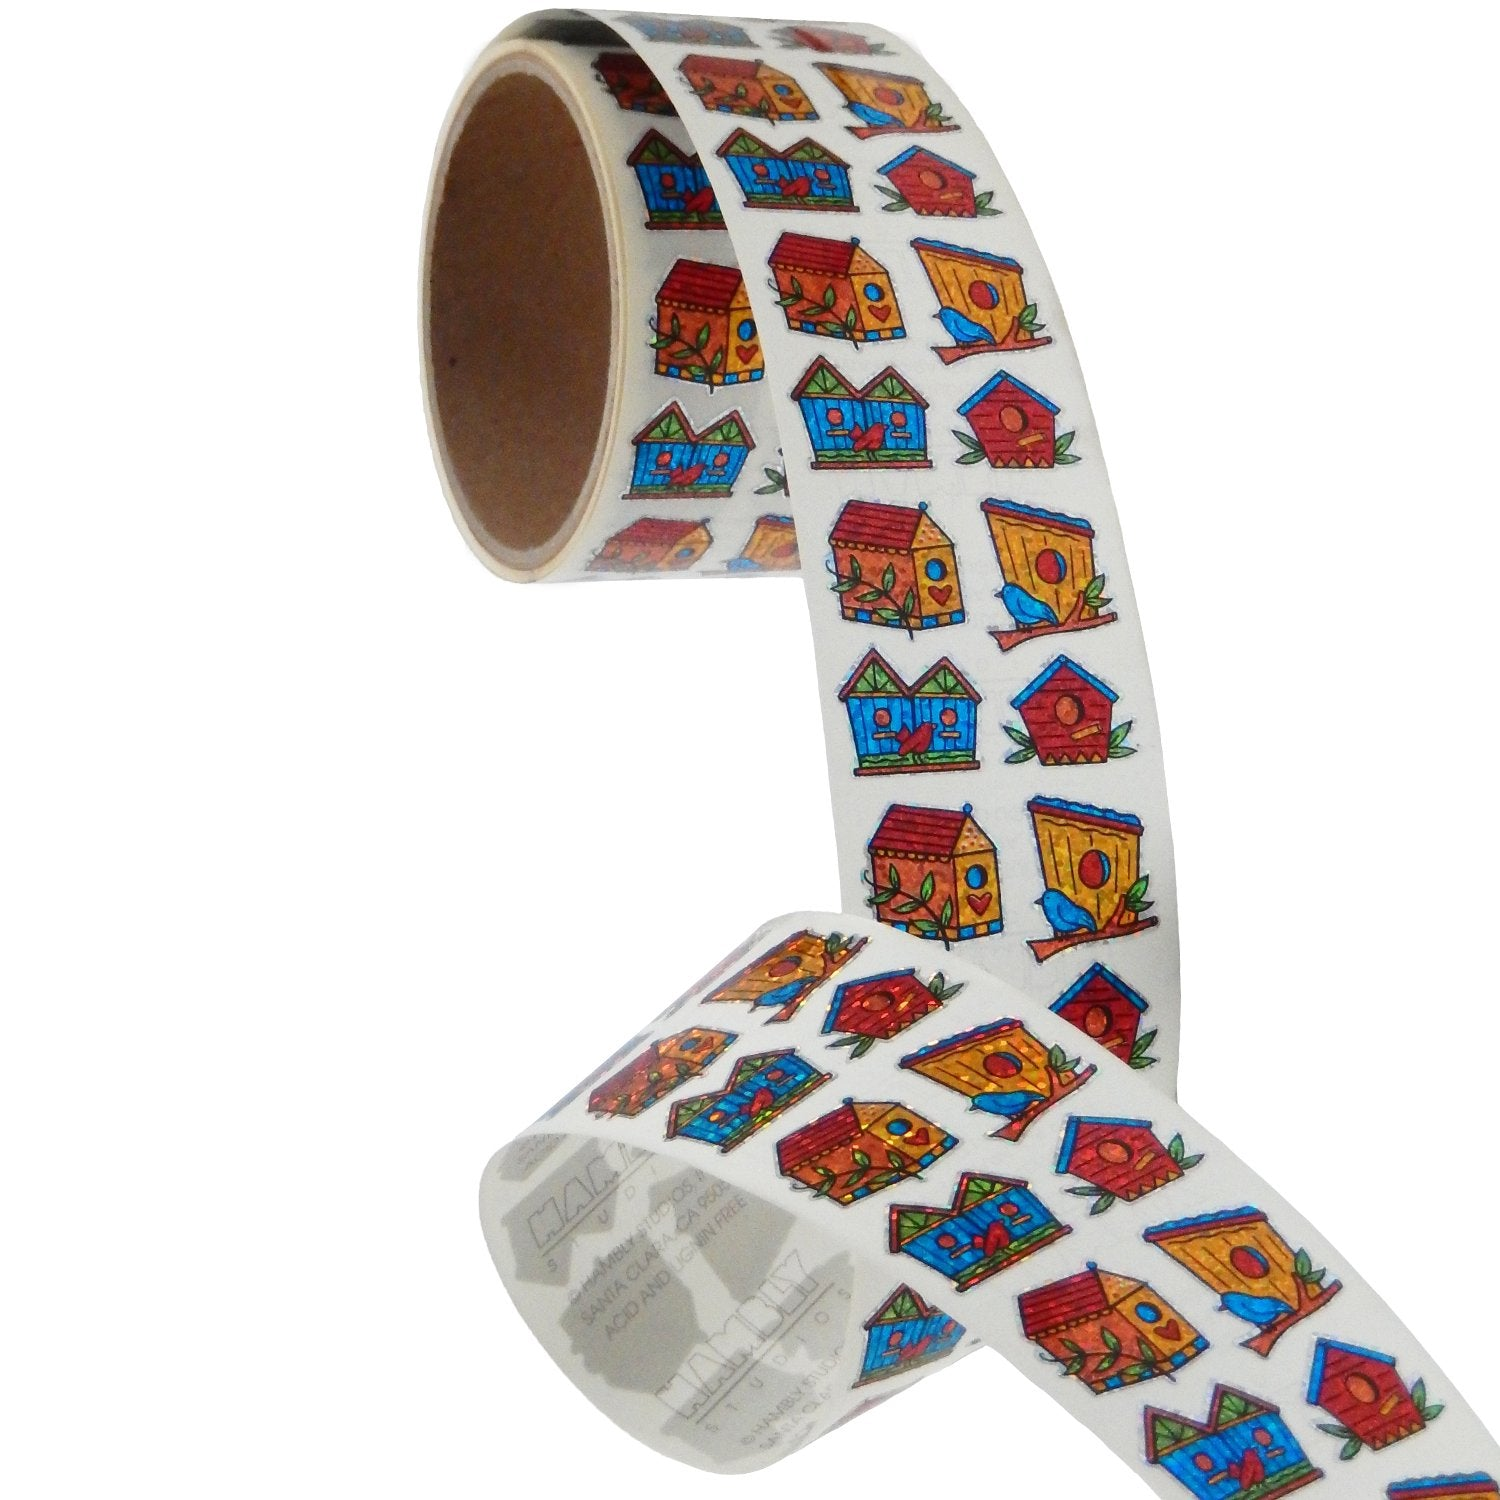 Jillson & Roberts Bulk Roll Prismatic Stickers, Mini Birdhouses (100 Repeats) - Present Paper